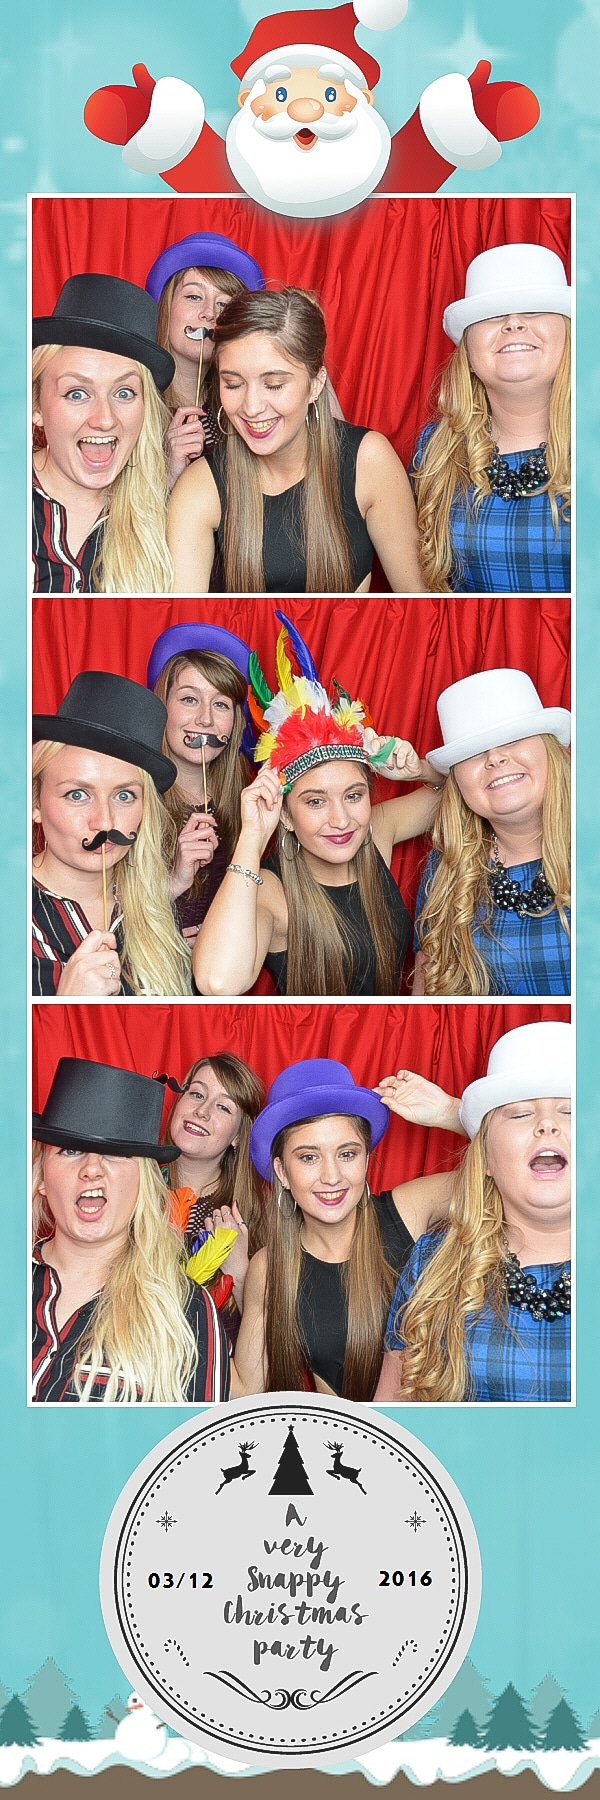 girls in fancy dress at xmas party photo booth